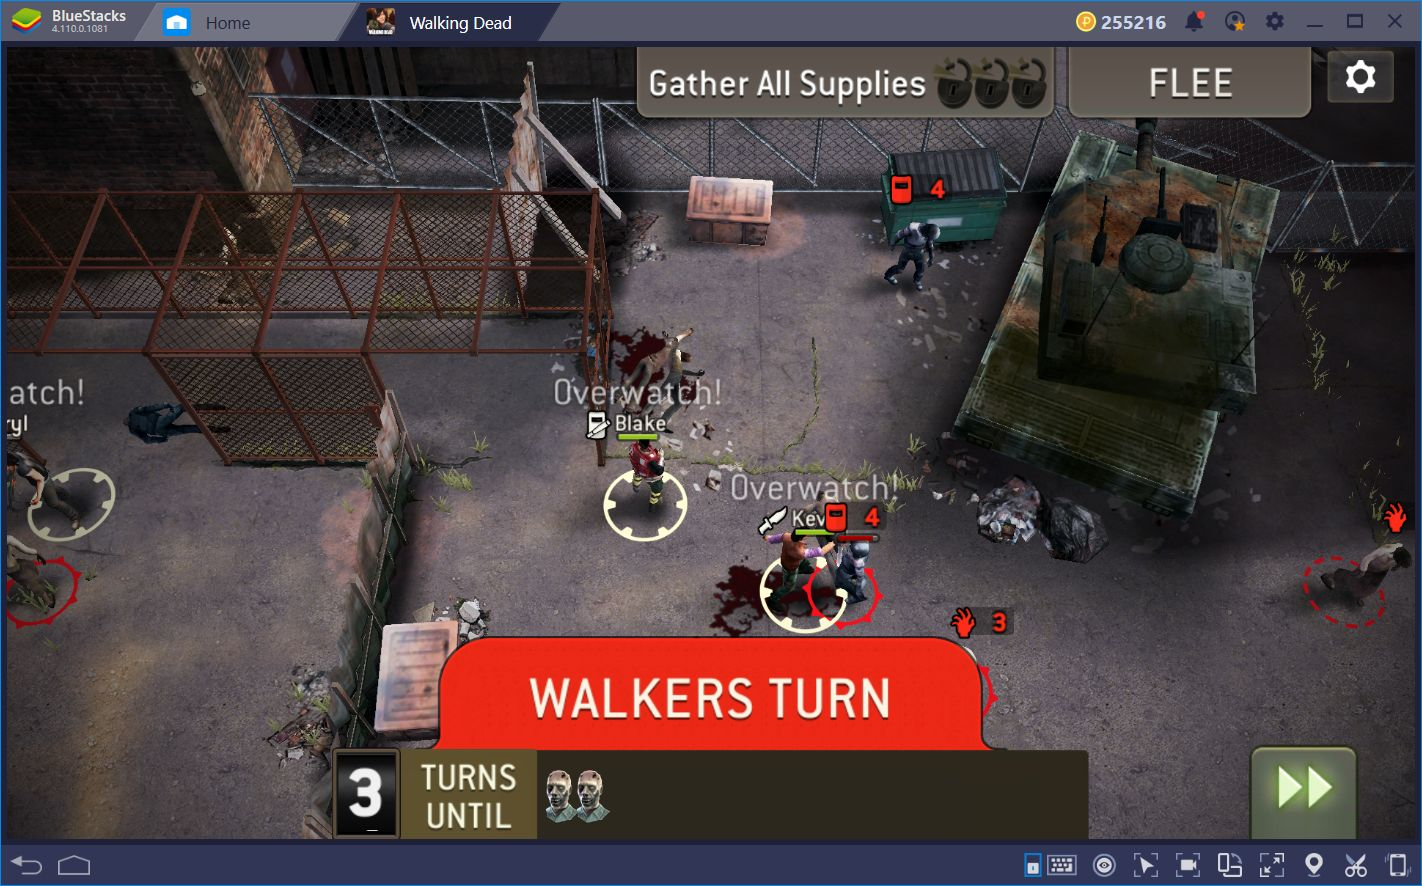 The Walking Dead: No Man's Land—Combat and Building Guide